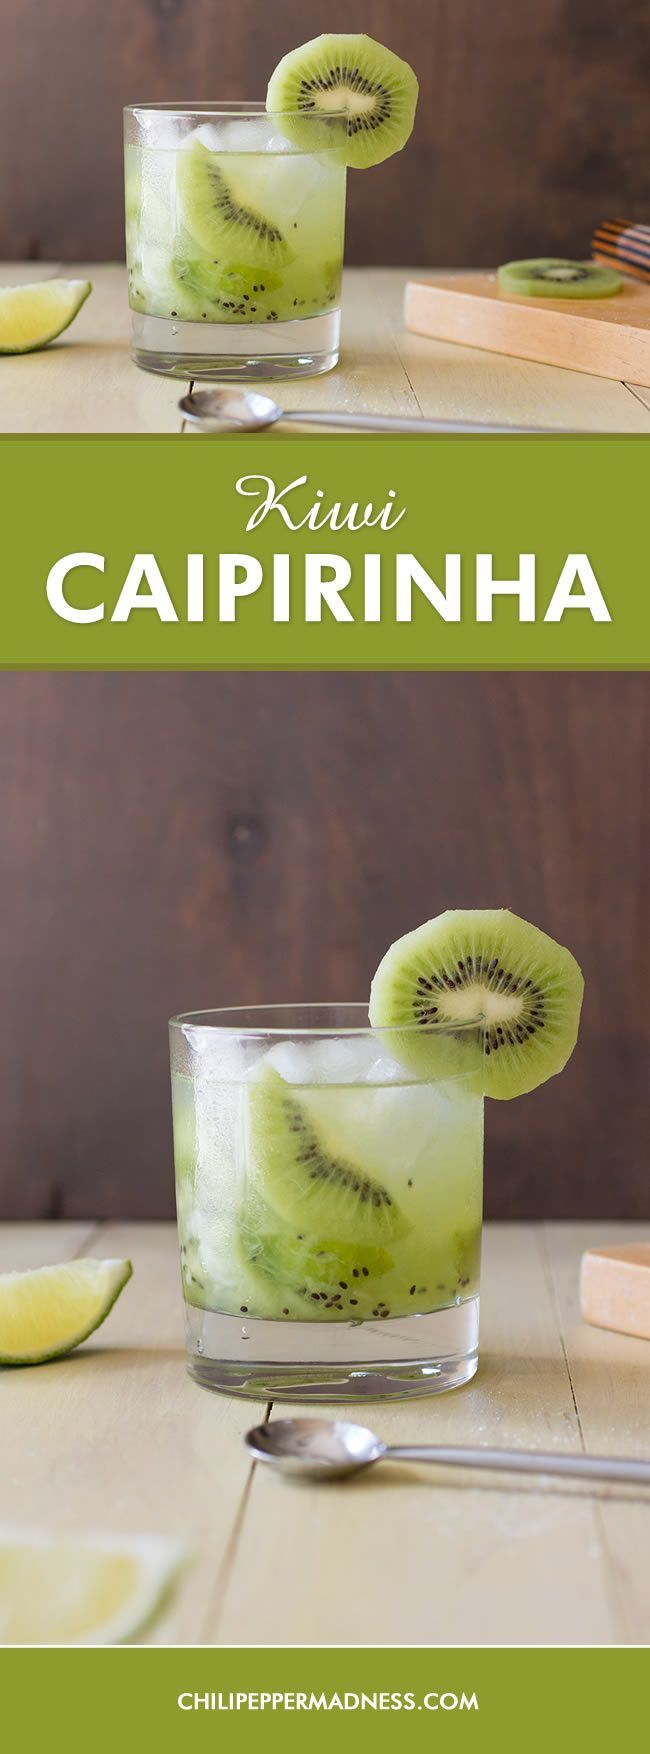 Kiwi Caipirinha - A twist on a popular Brazilian drink recipe made with kiwi, lime, sugar and Cachaça or rum - the Caipirinha. It's a tropical vacation in a glass.